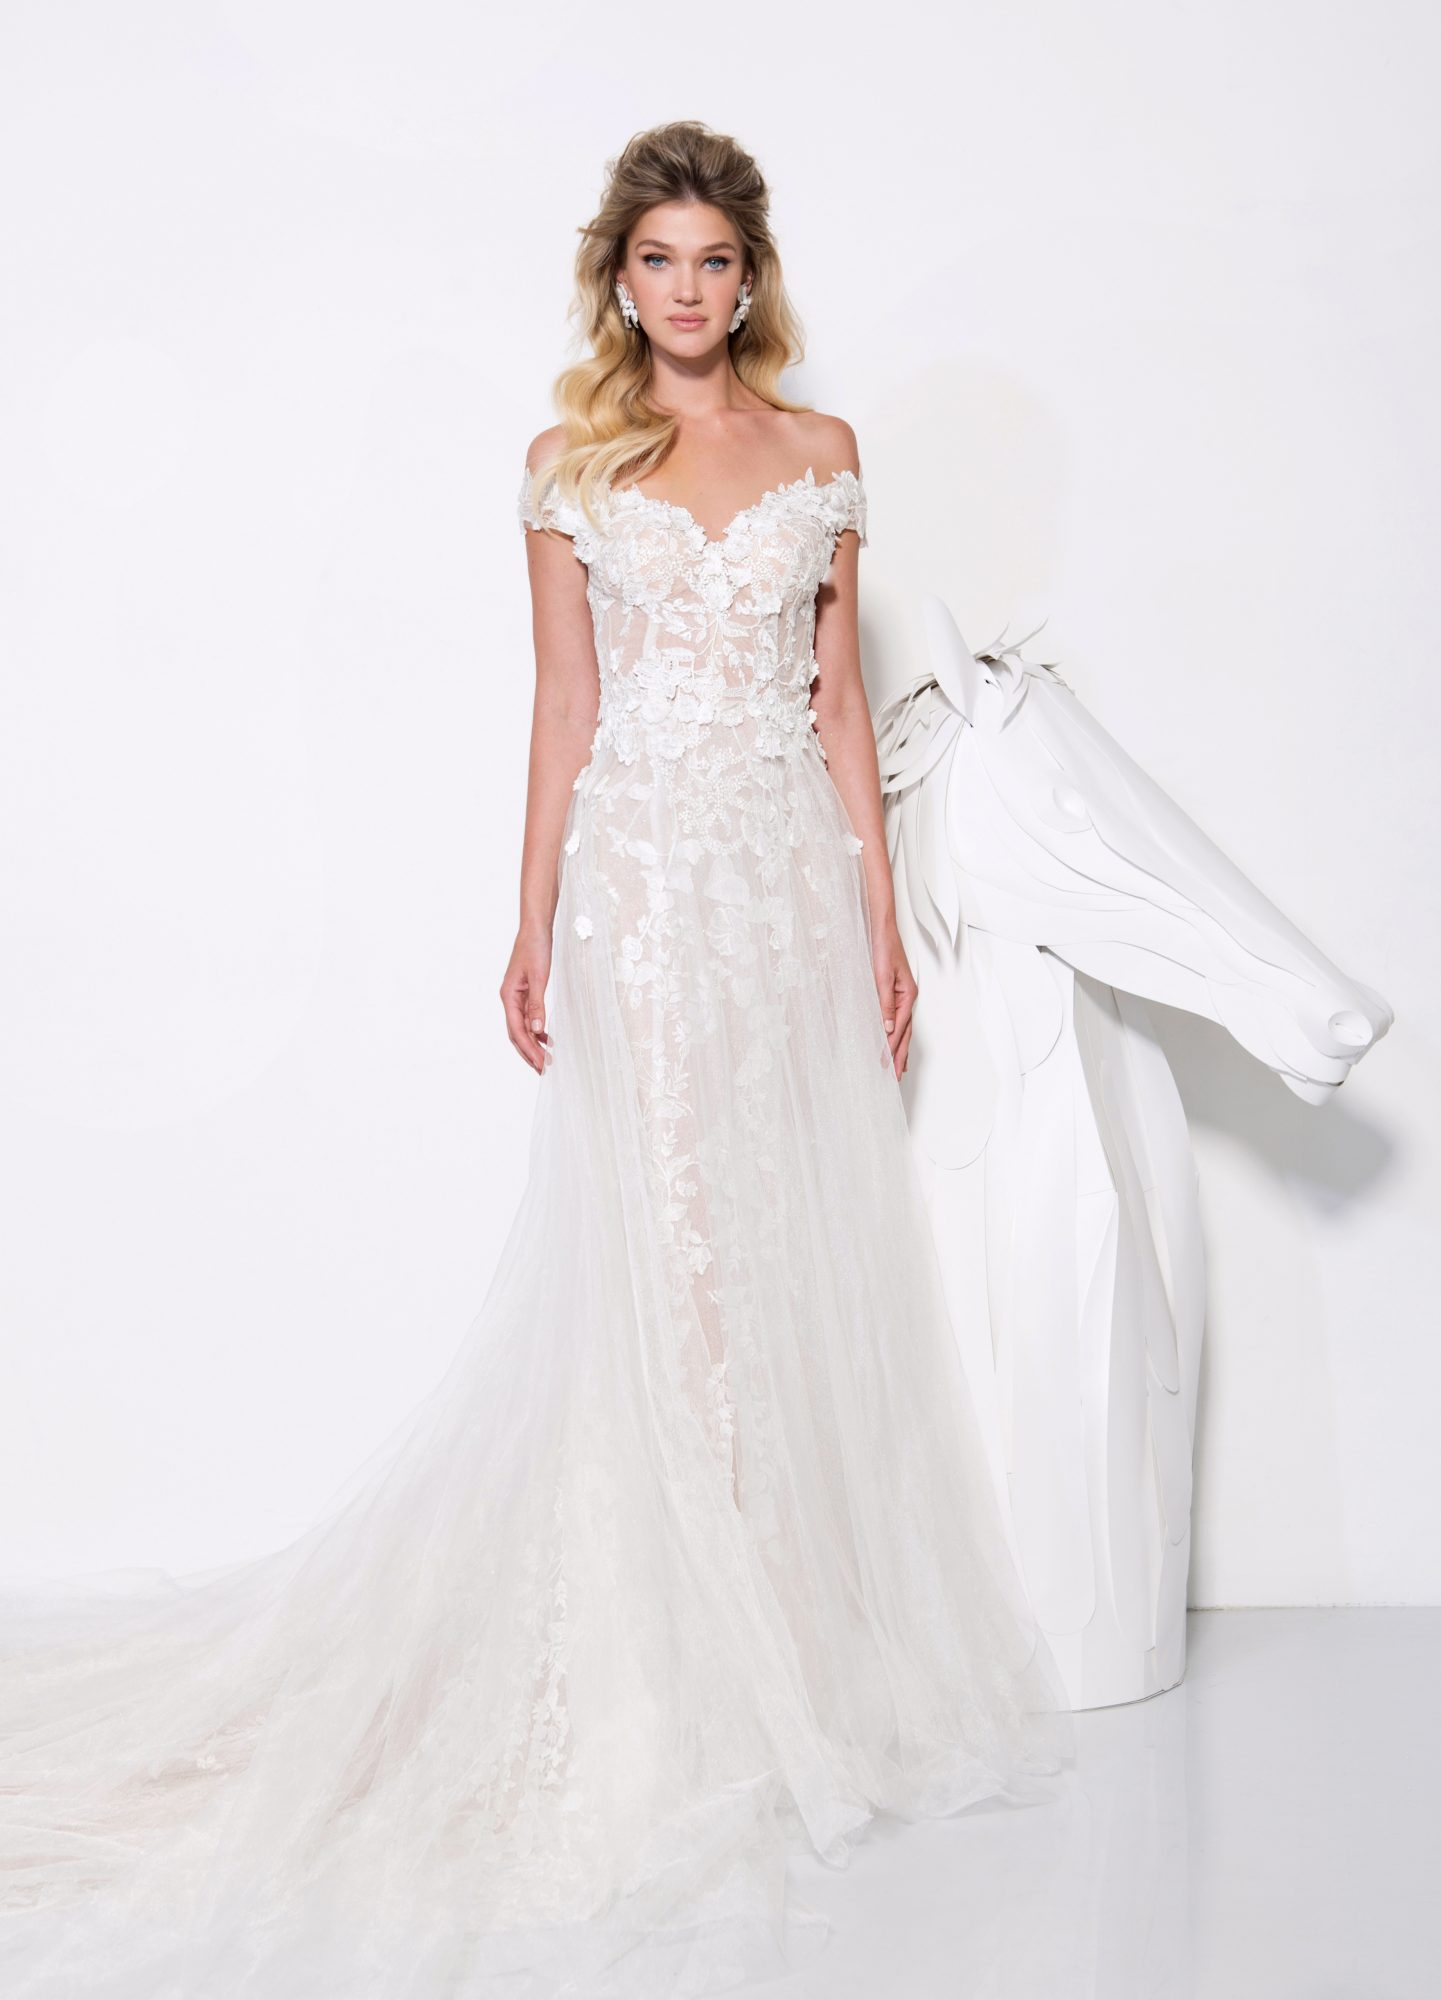 persy wedding dress spring 2019 sweetheart off the shoulder a-line gown